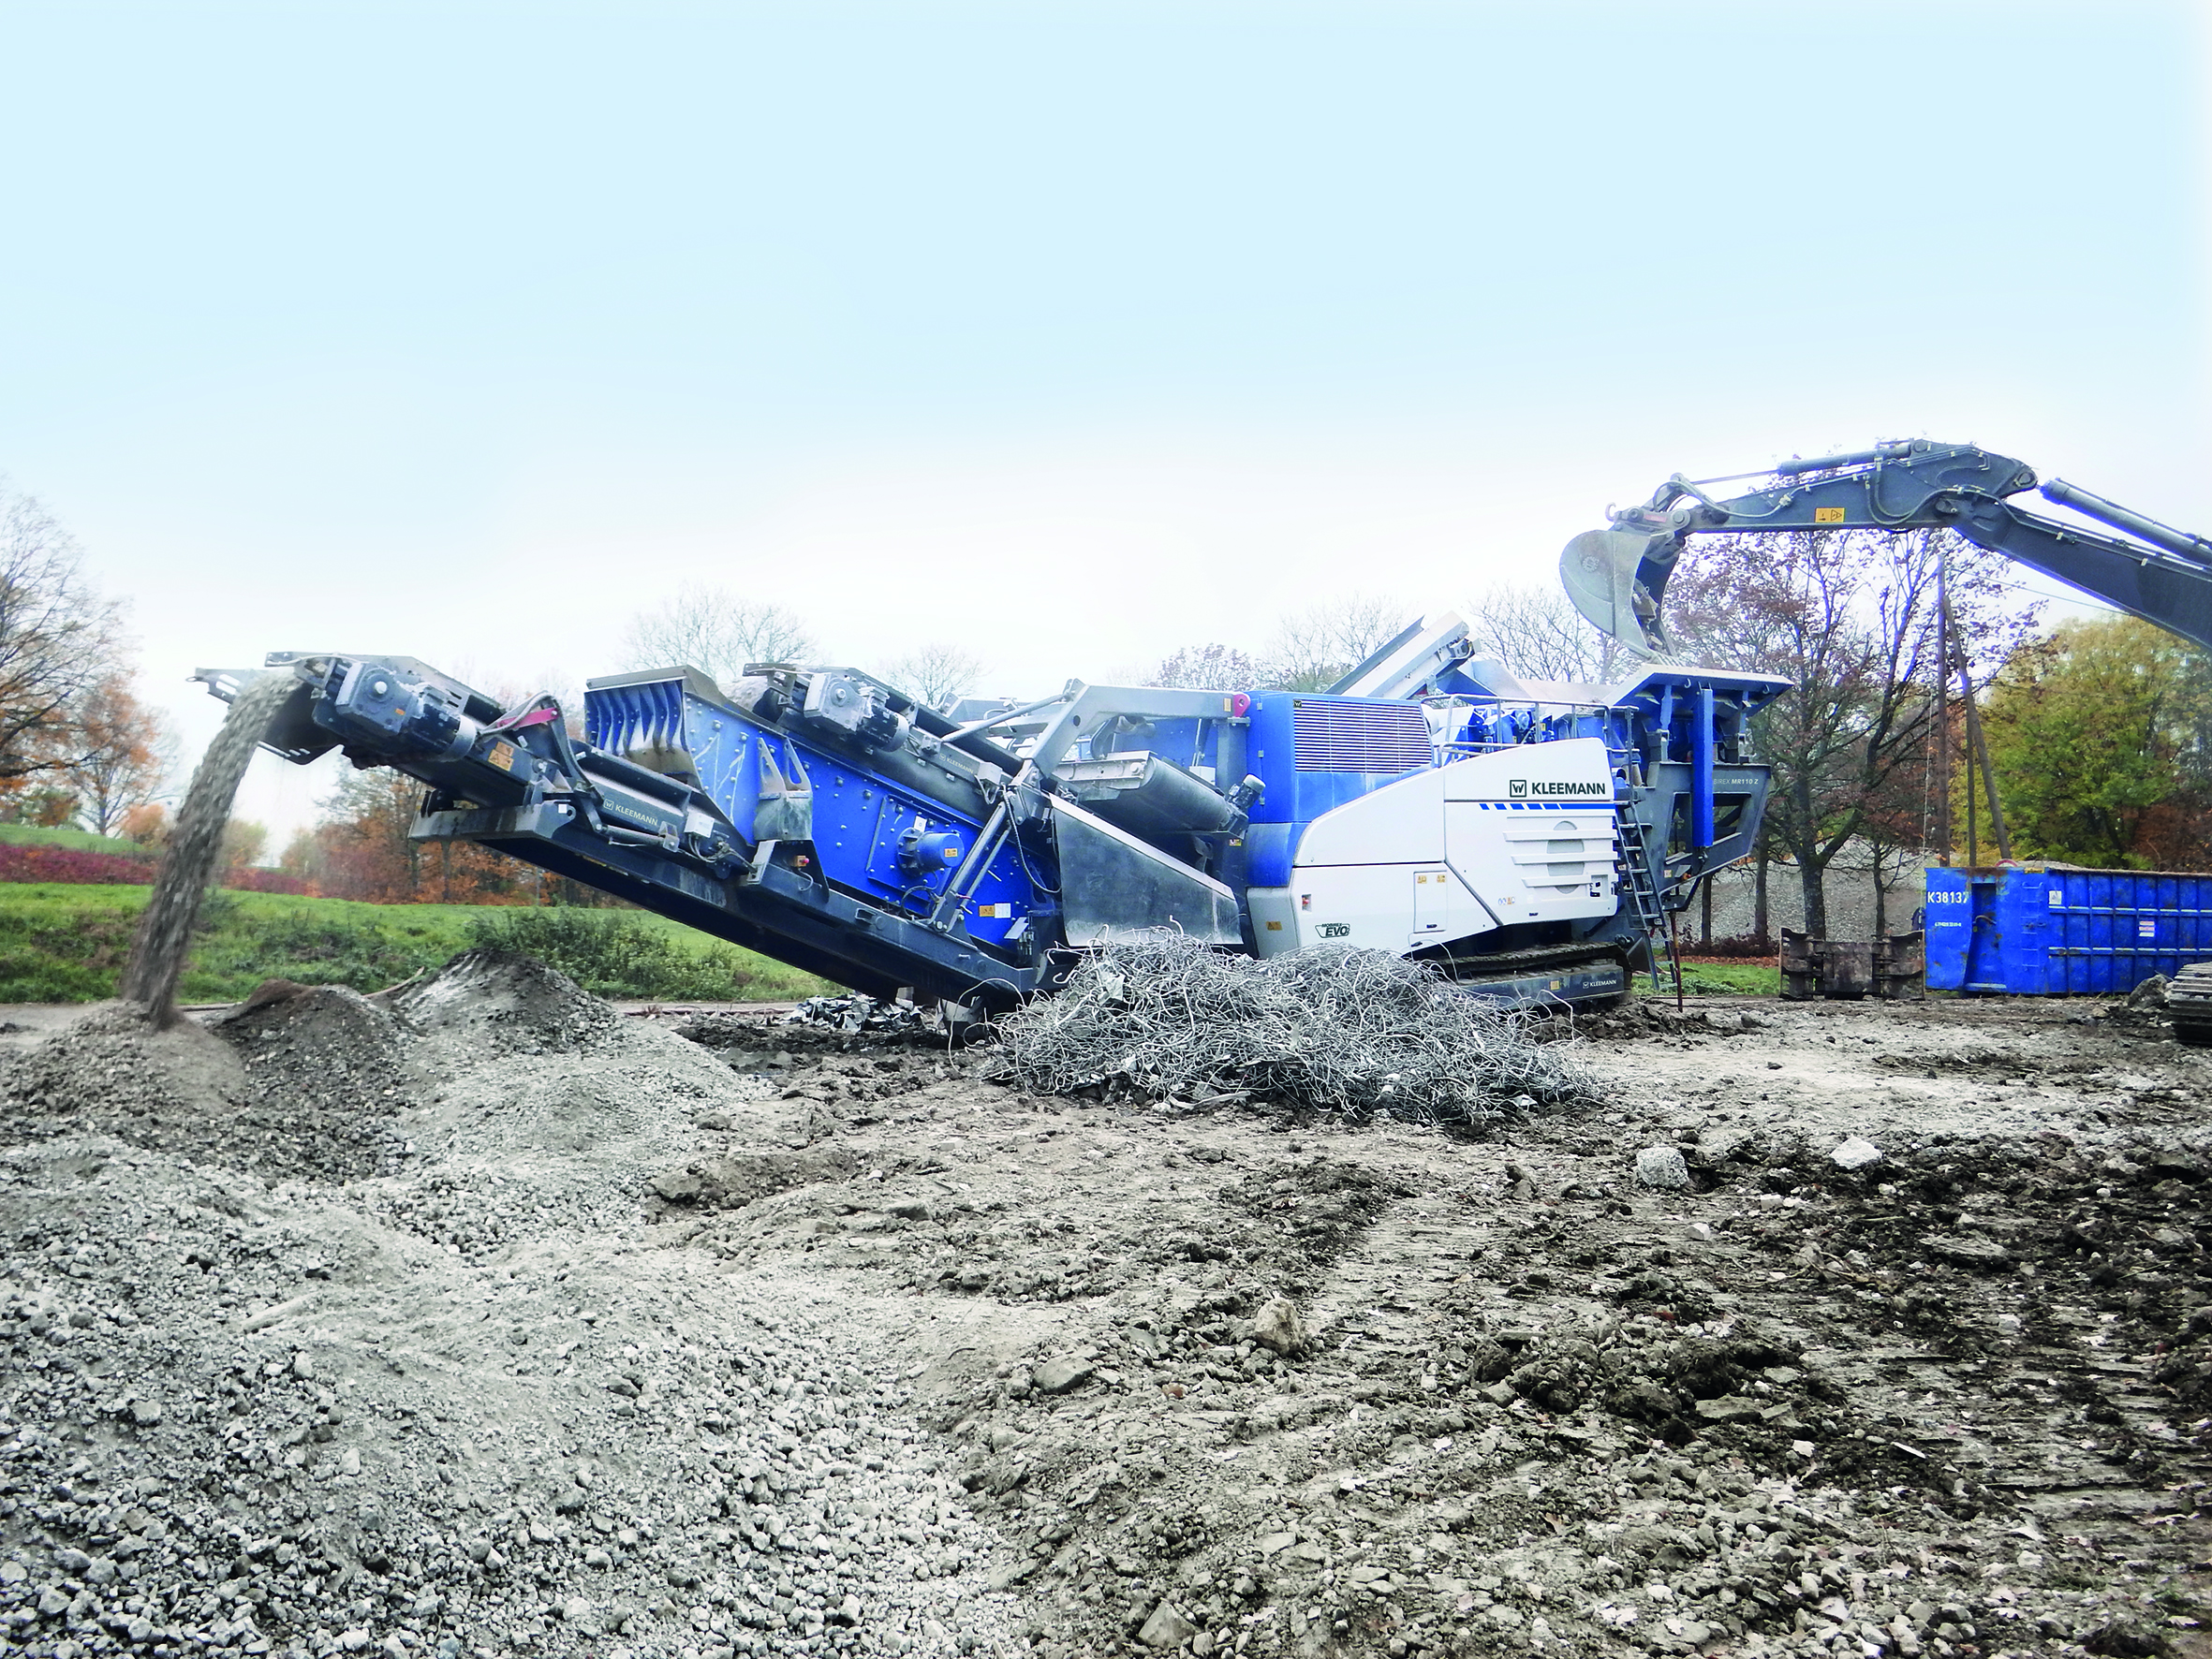 Kleemann's MOBIREX MR 110 Z EVO2 mobile impact crusher works efficiently in both natural stone and recycling applications.